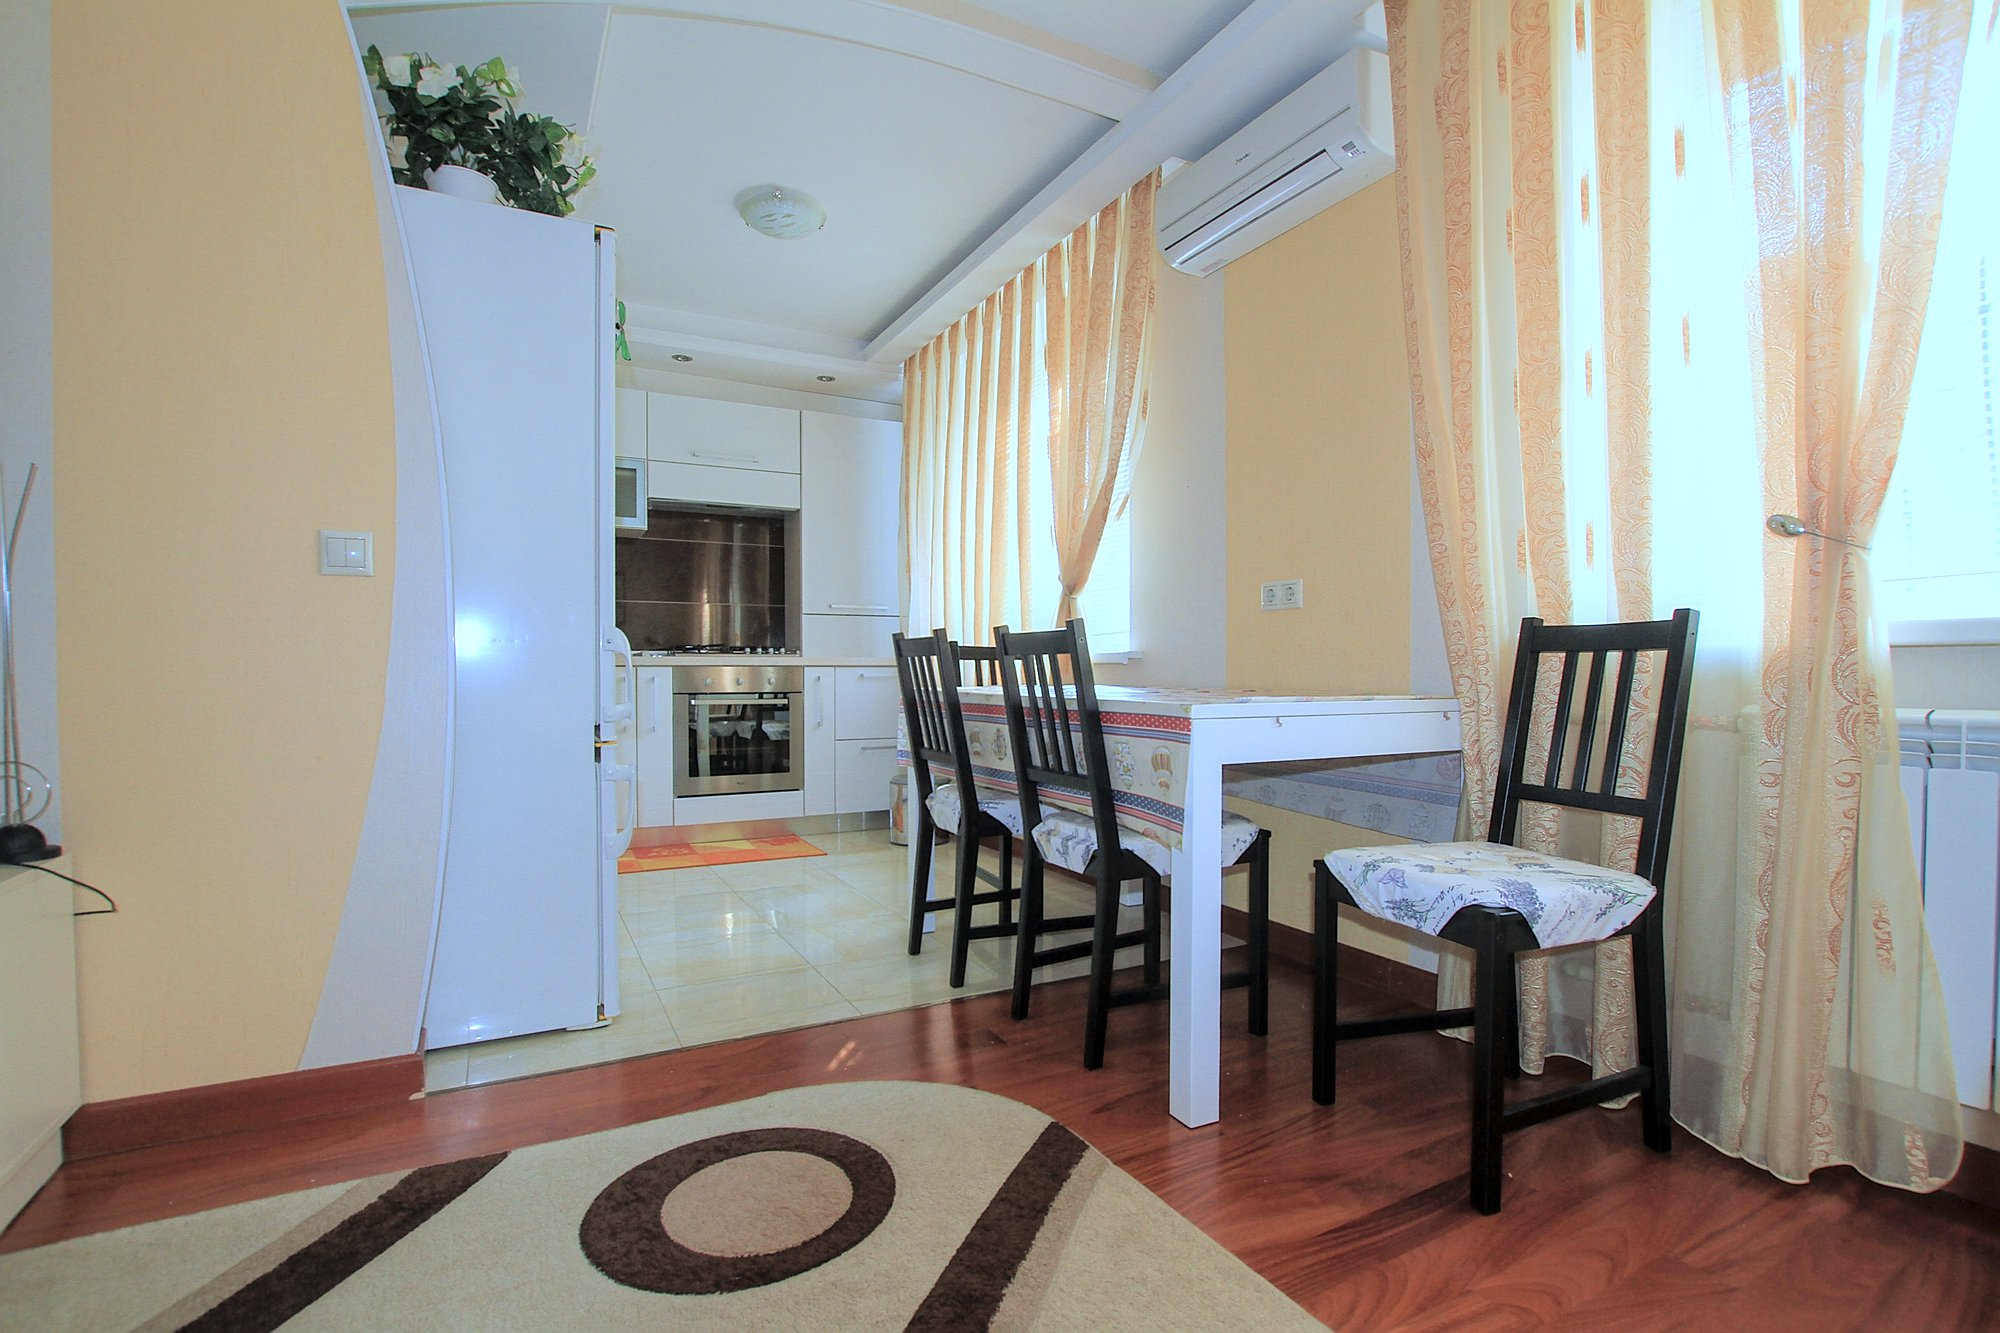 A-40-3-room-apartment-for-rent-in-Chisinau-Botanica_04.jpg